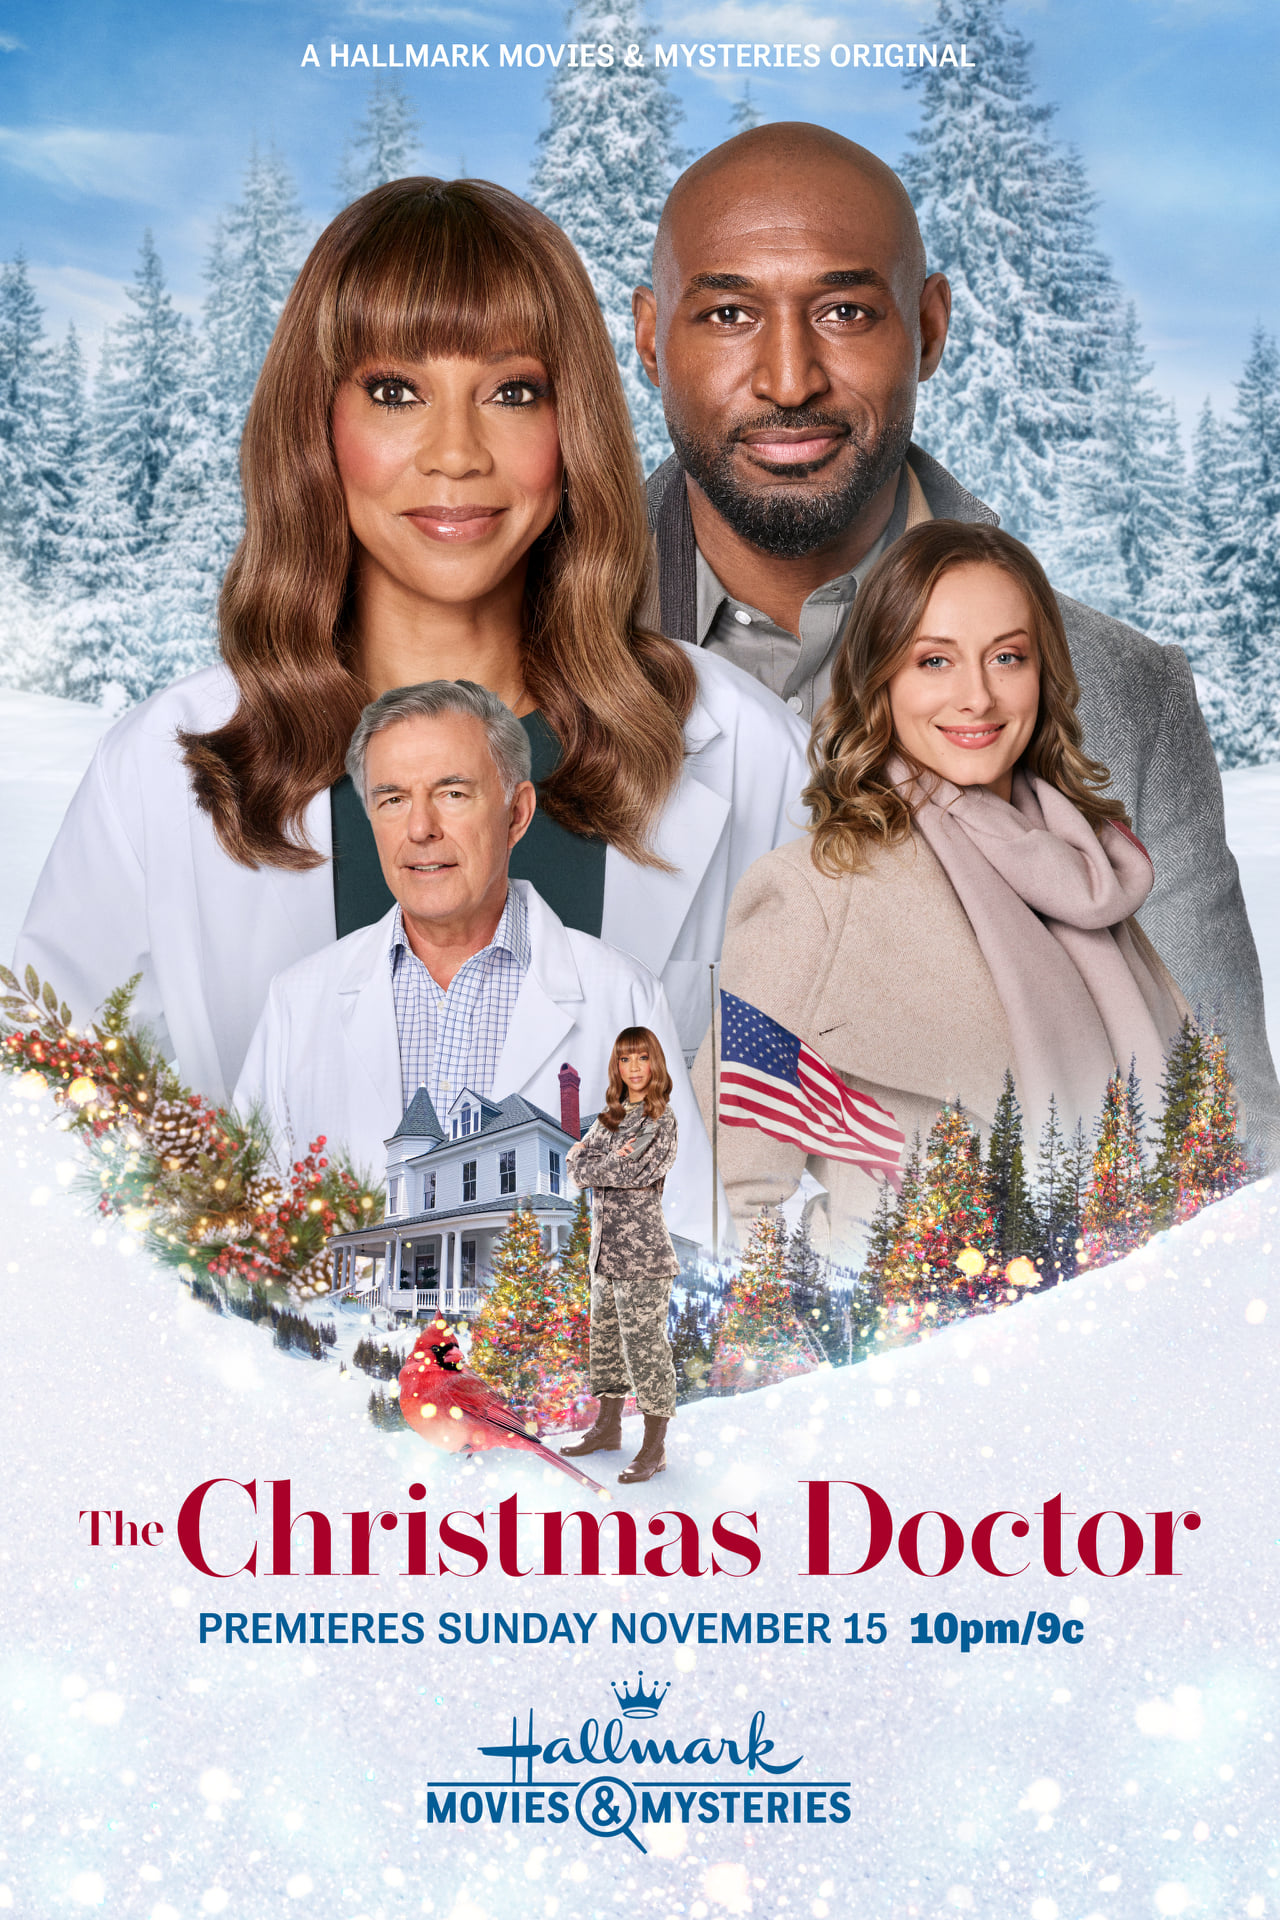 The Christmas Doctor hd on soap2day